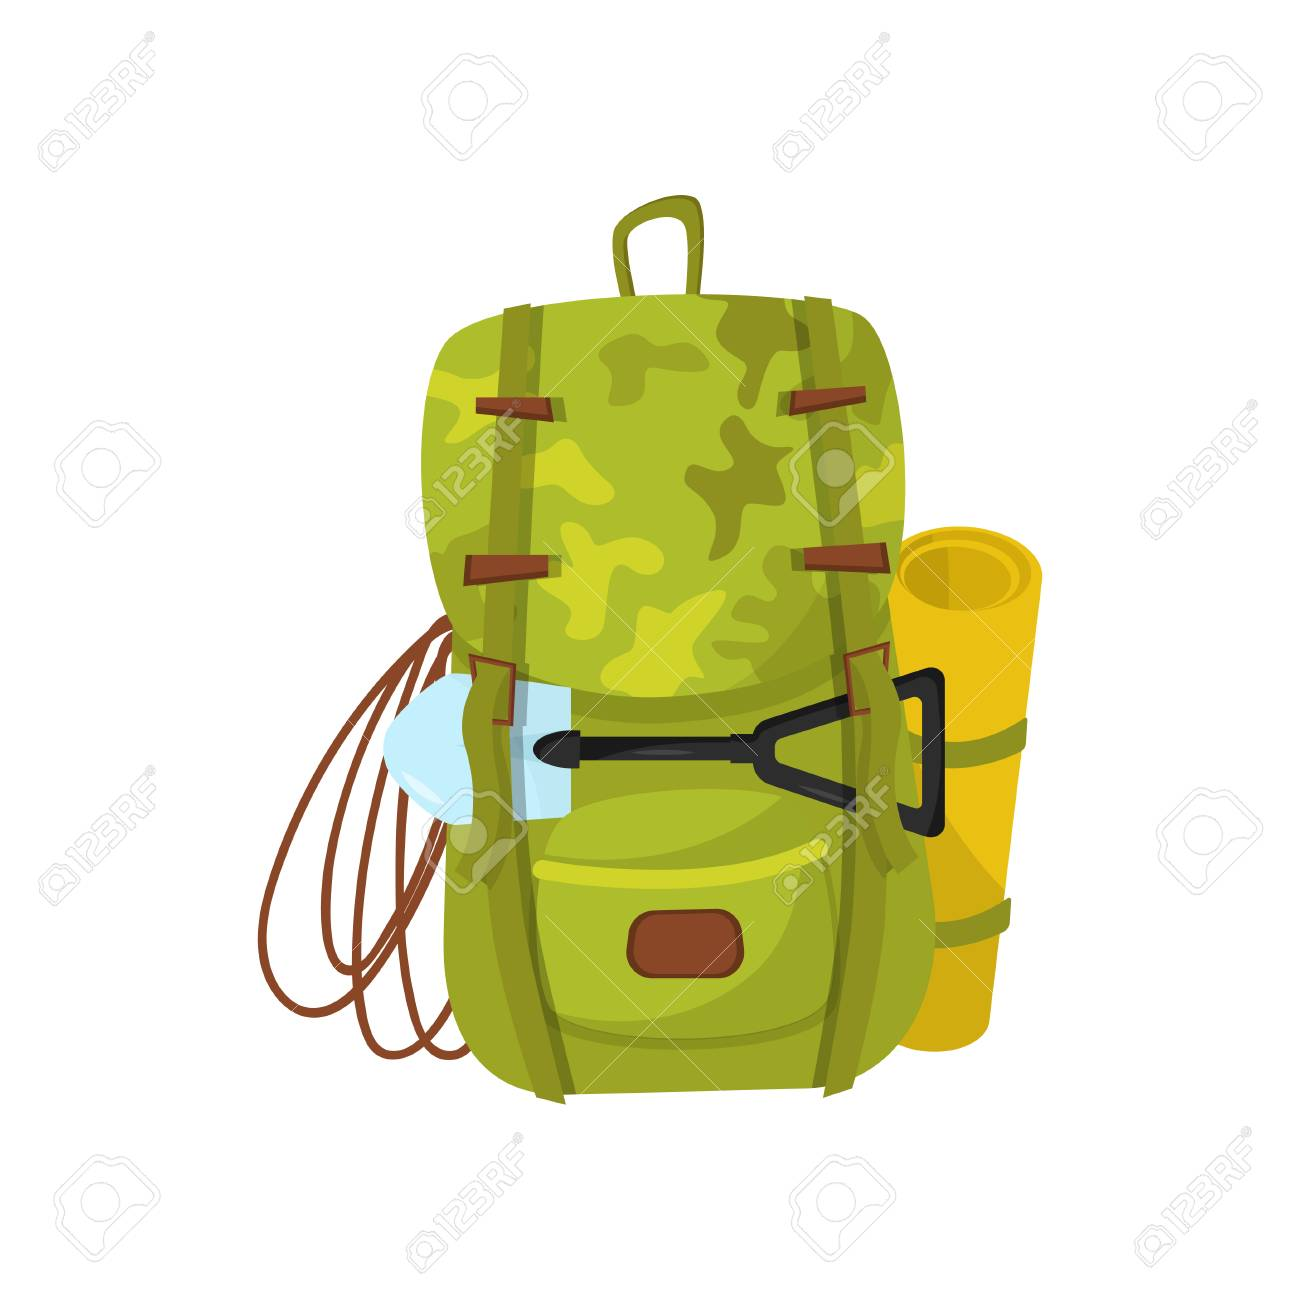 502ee7d5c8e3 Flat Vector Icon Of Big Camouflage Backpack With Small Shovel ...